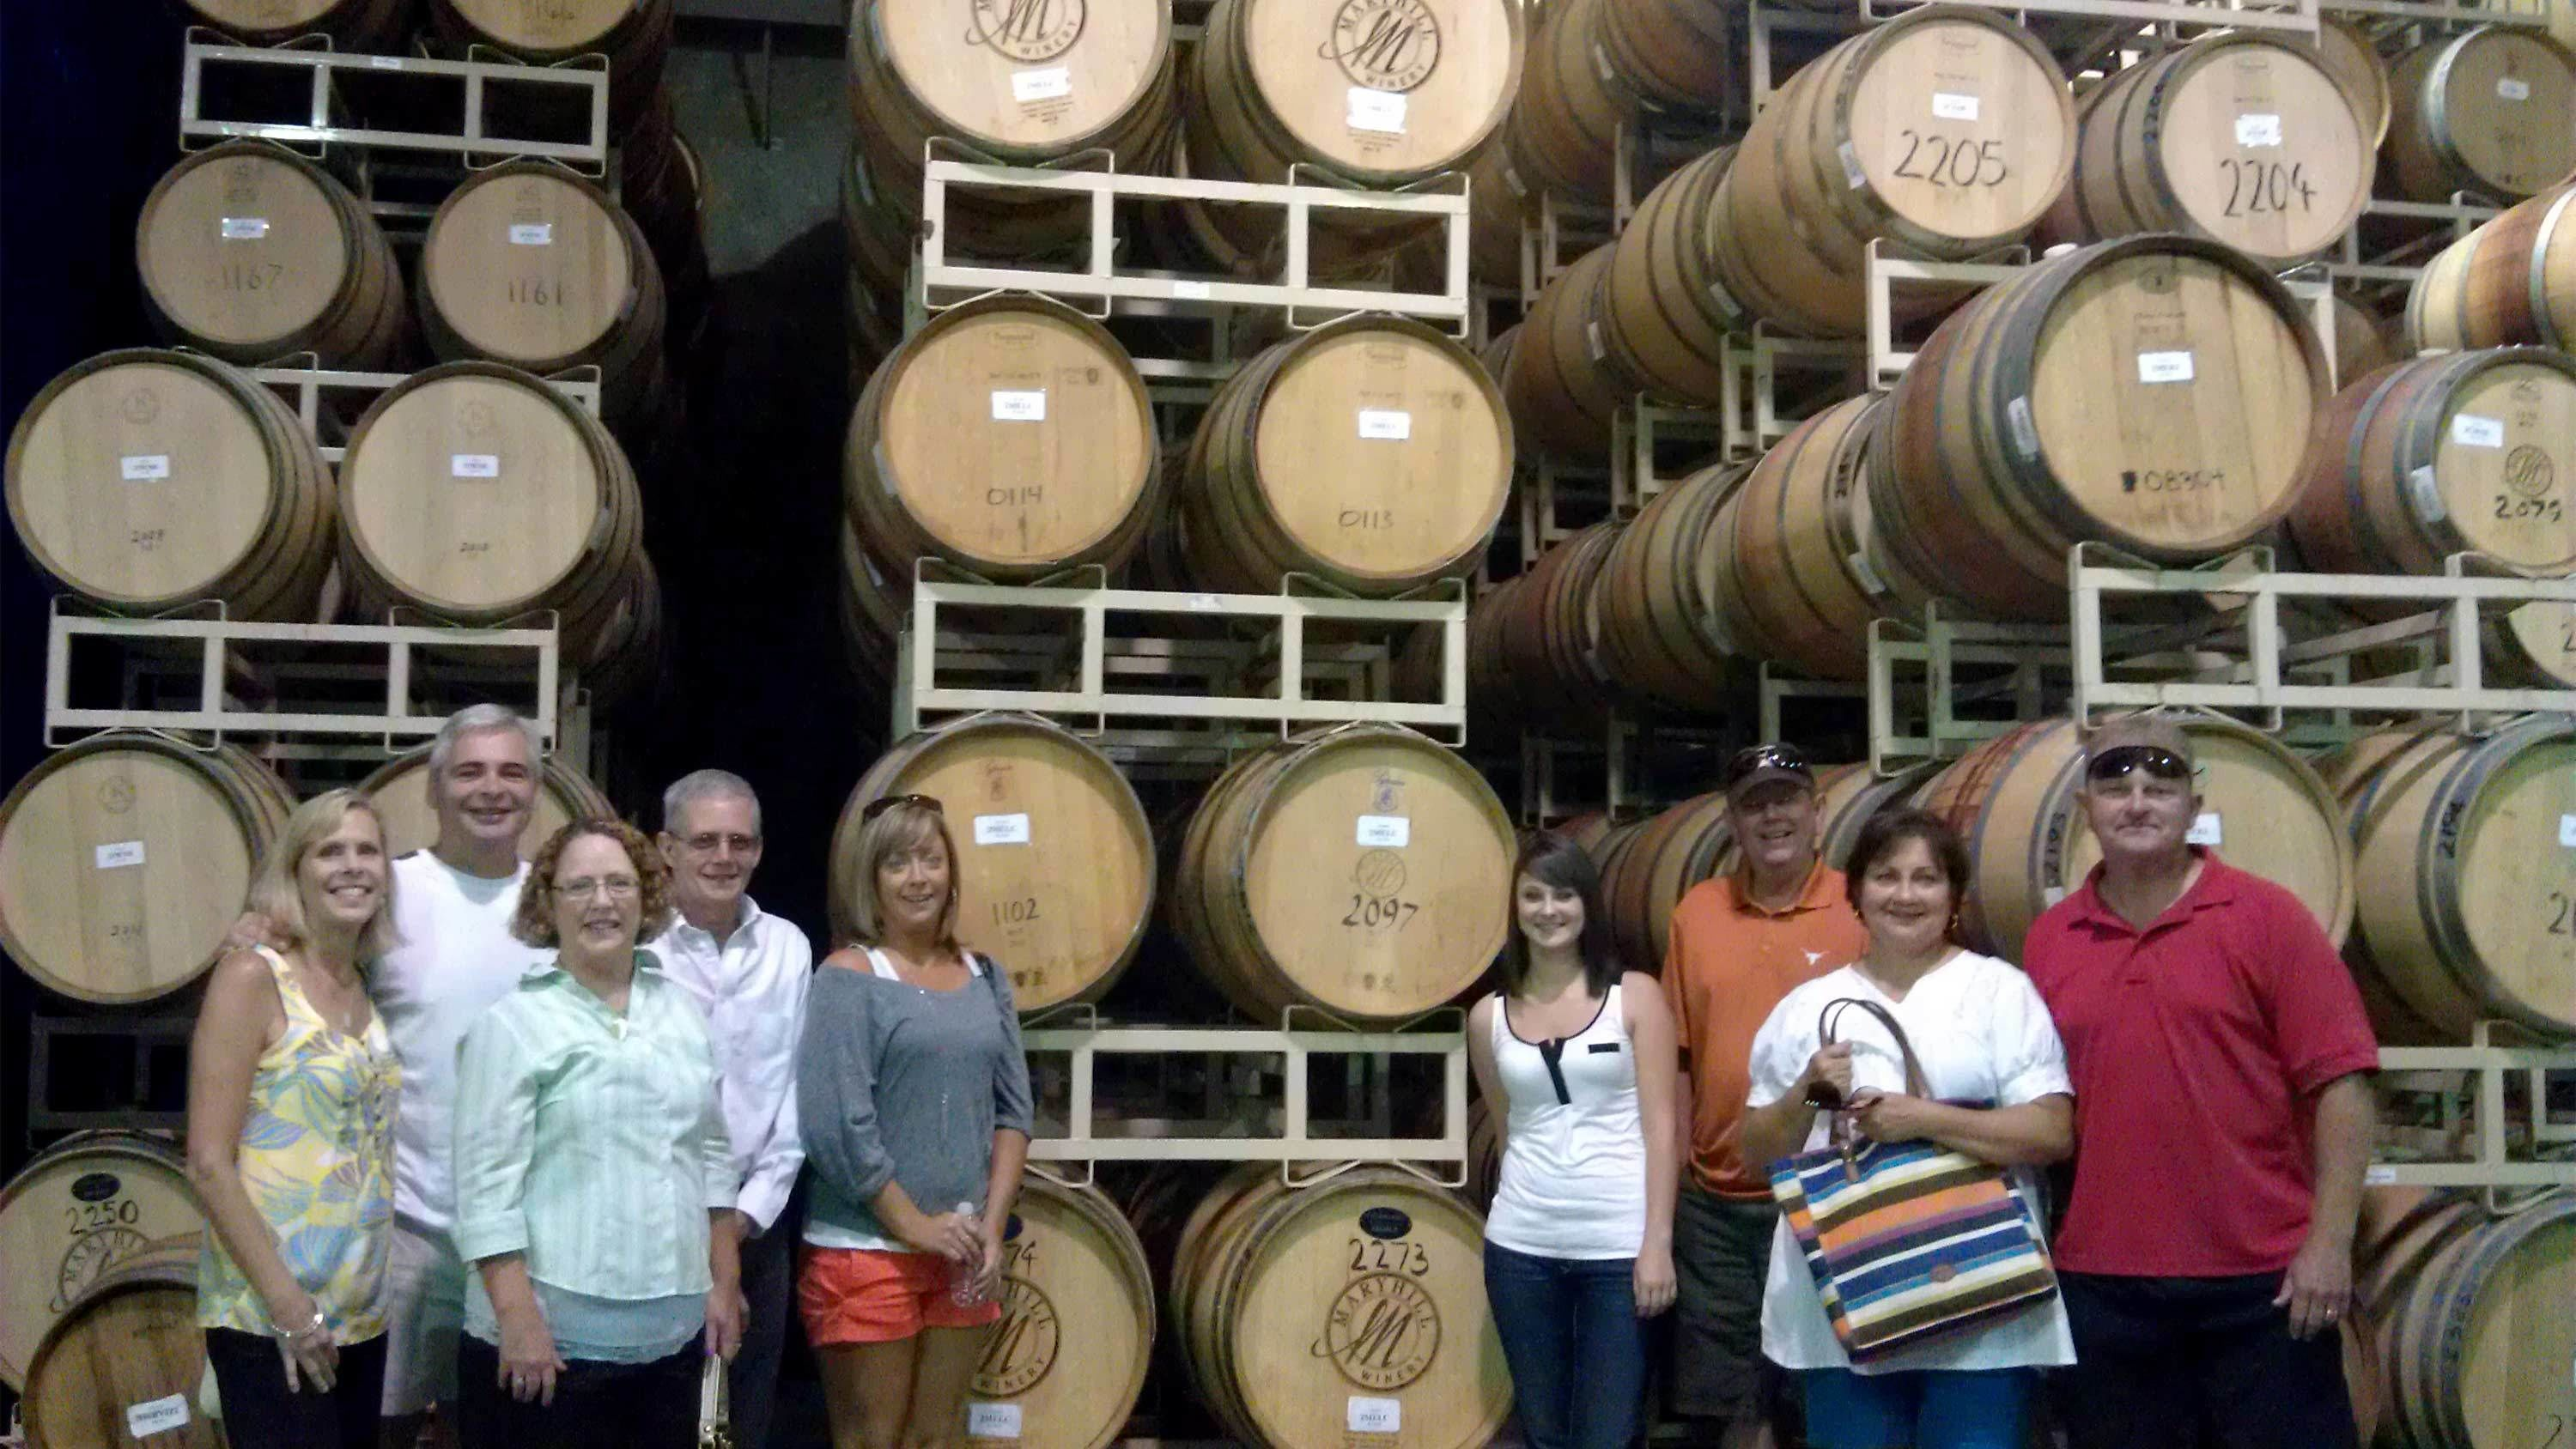 Group on a wine tasting tour in Portland, Oregon